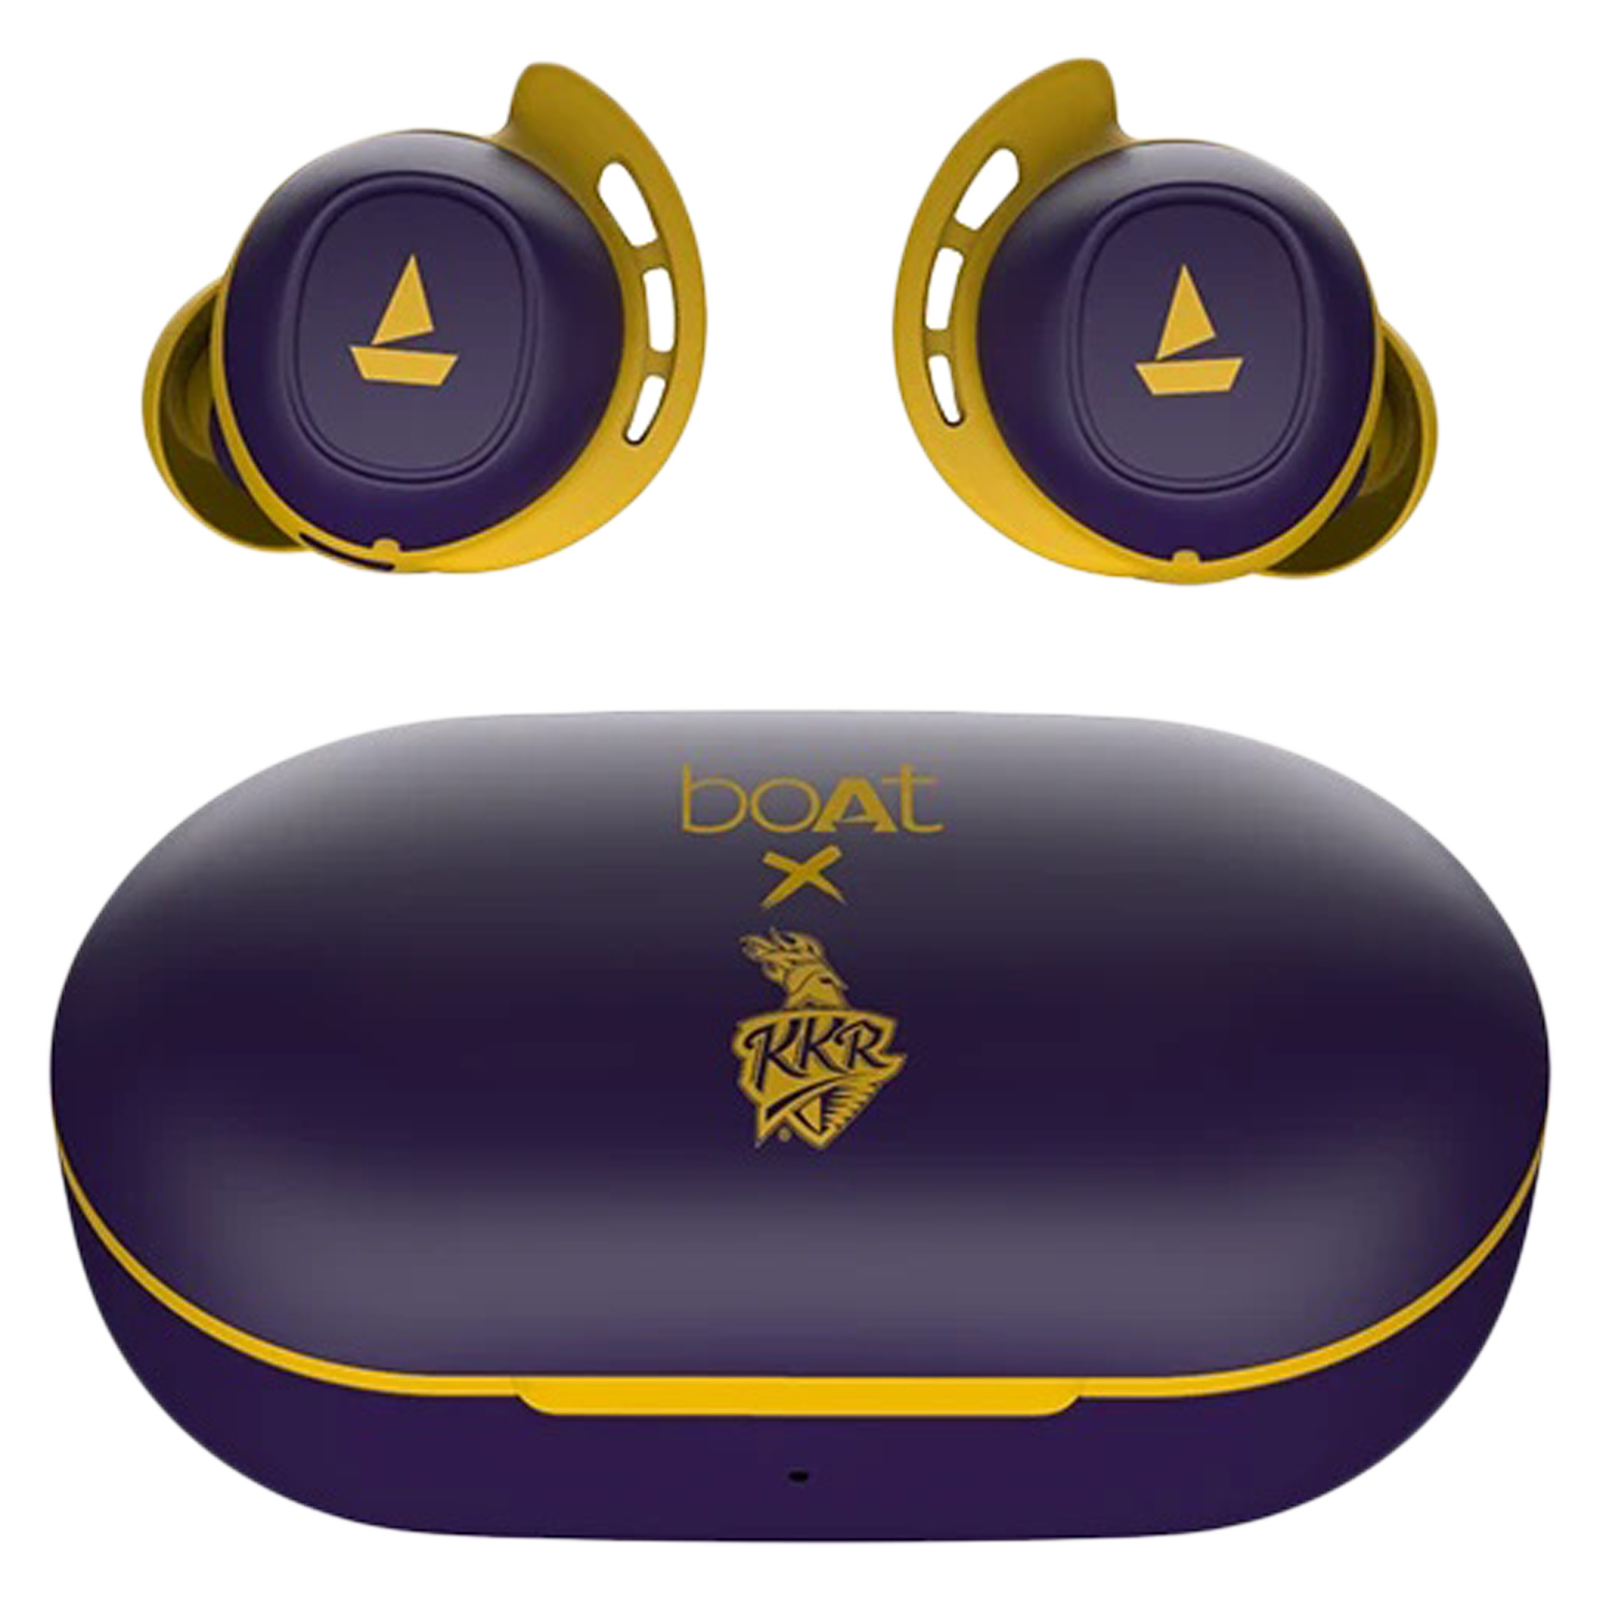 boAt Airdopes 441 KKR Edition In-Ear Truly Wireless Earbuds with Mic (Bluetooth 5.0, Voice Assistant Support, Purple)_1